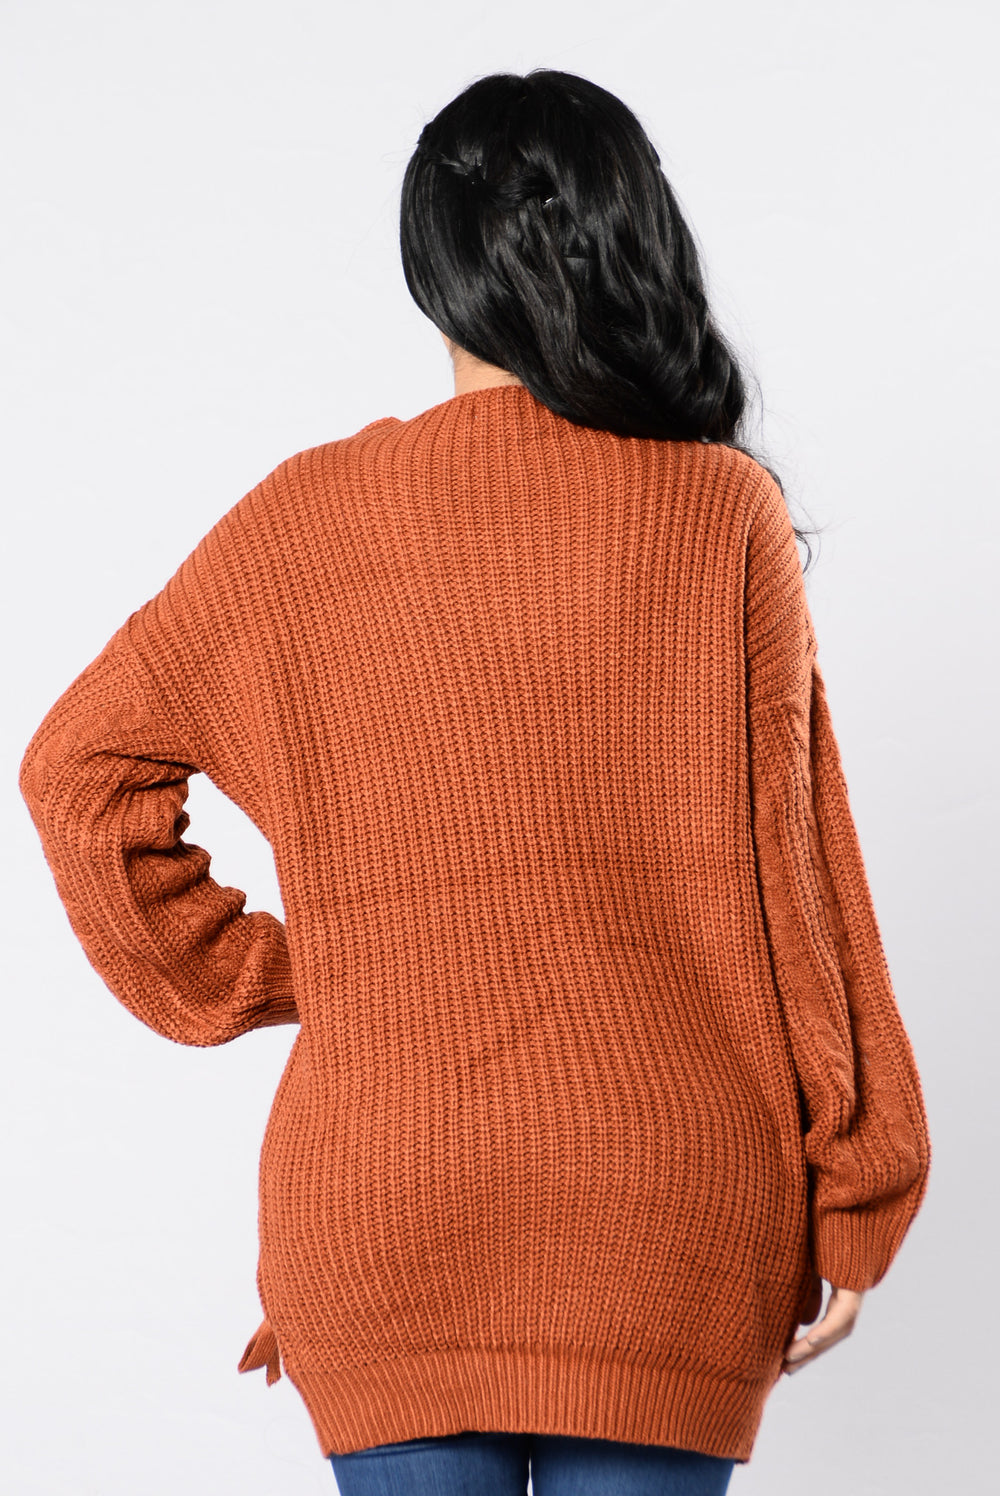 The Formula Sweater - Brick